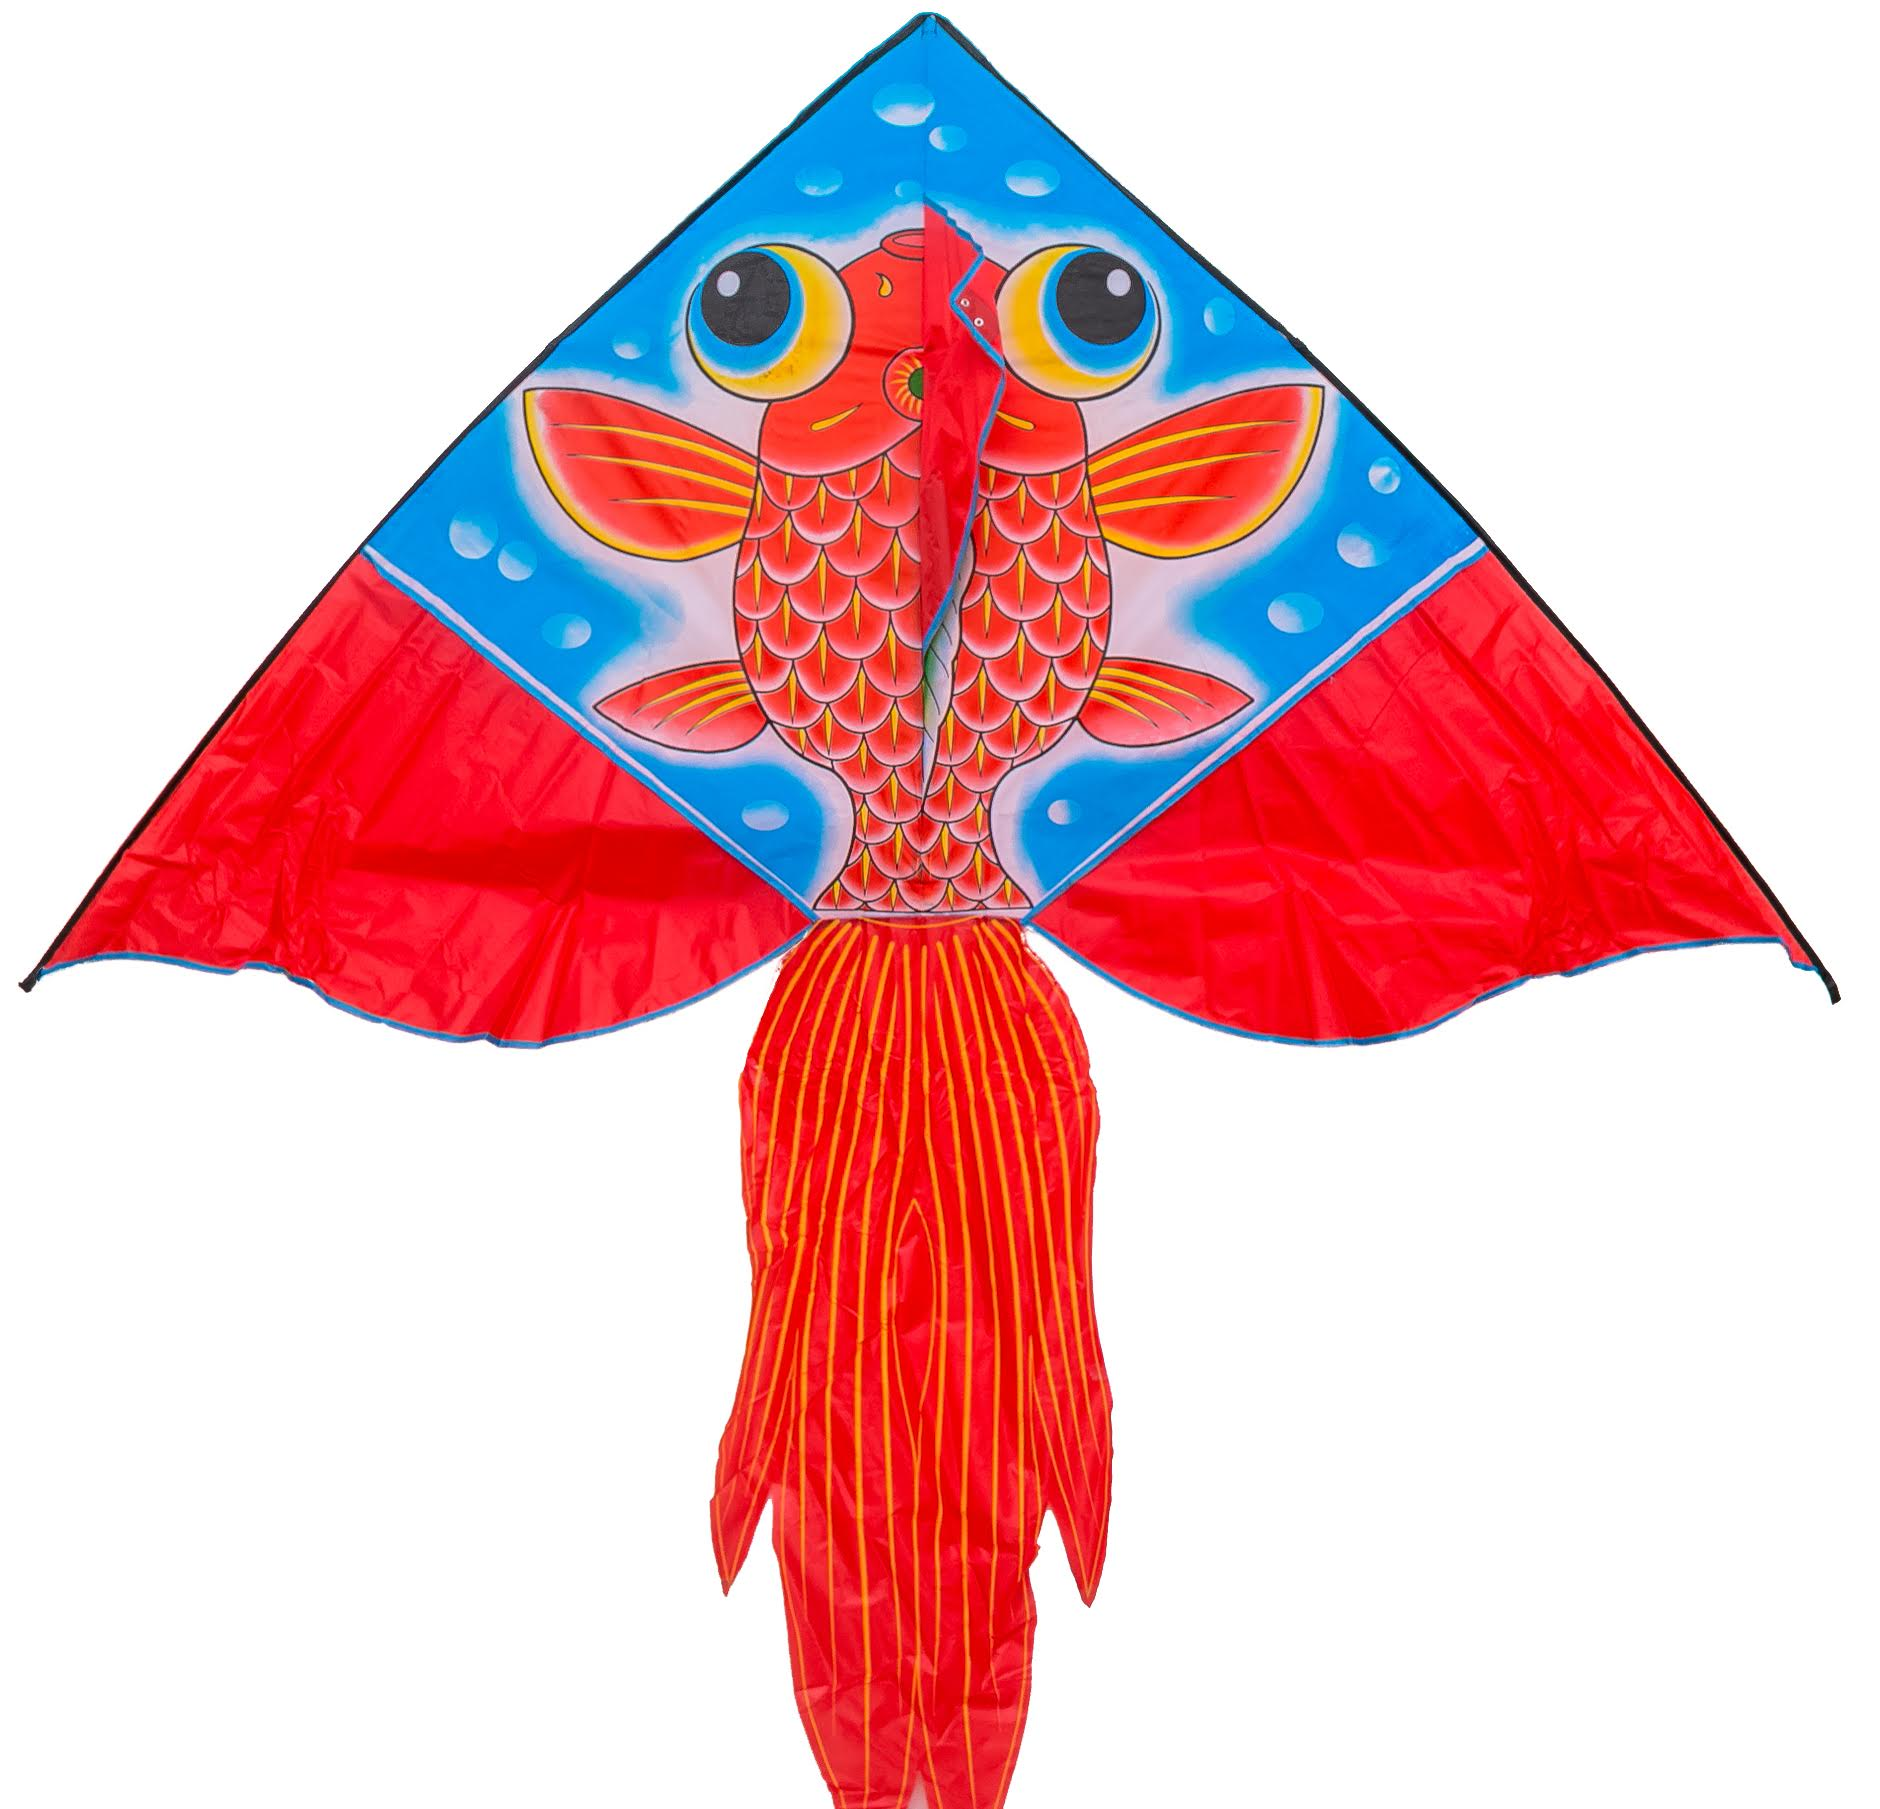 Red fish designer kite - Single line kite - FLY360 kite store